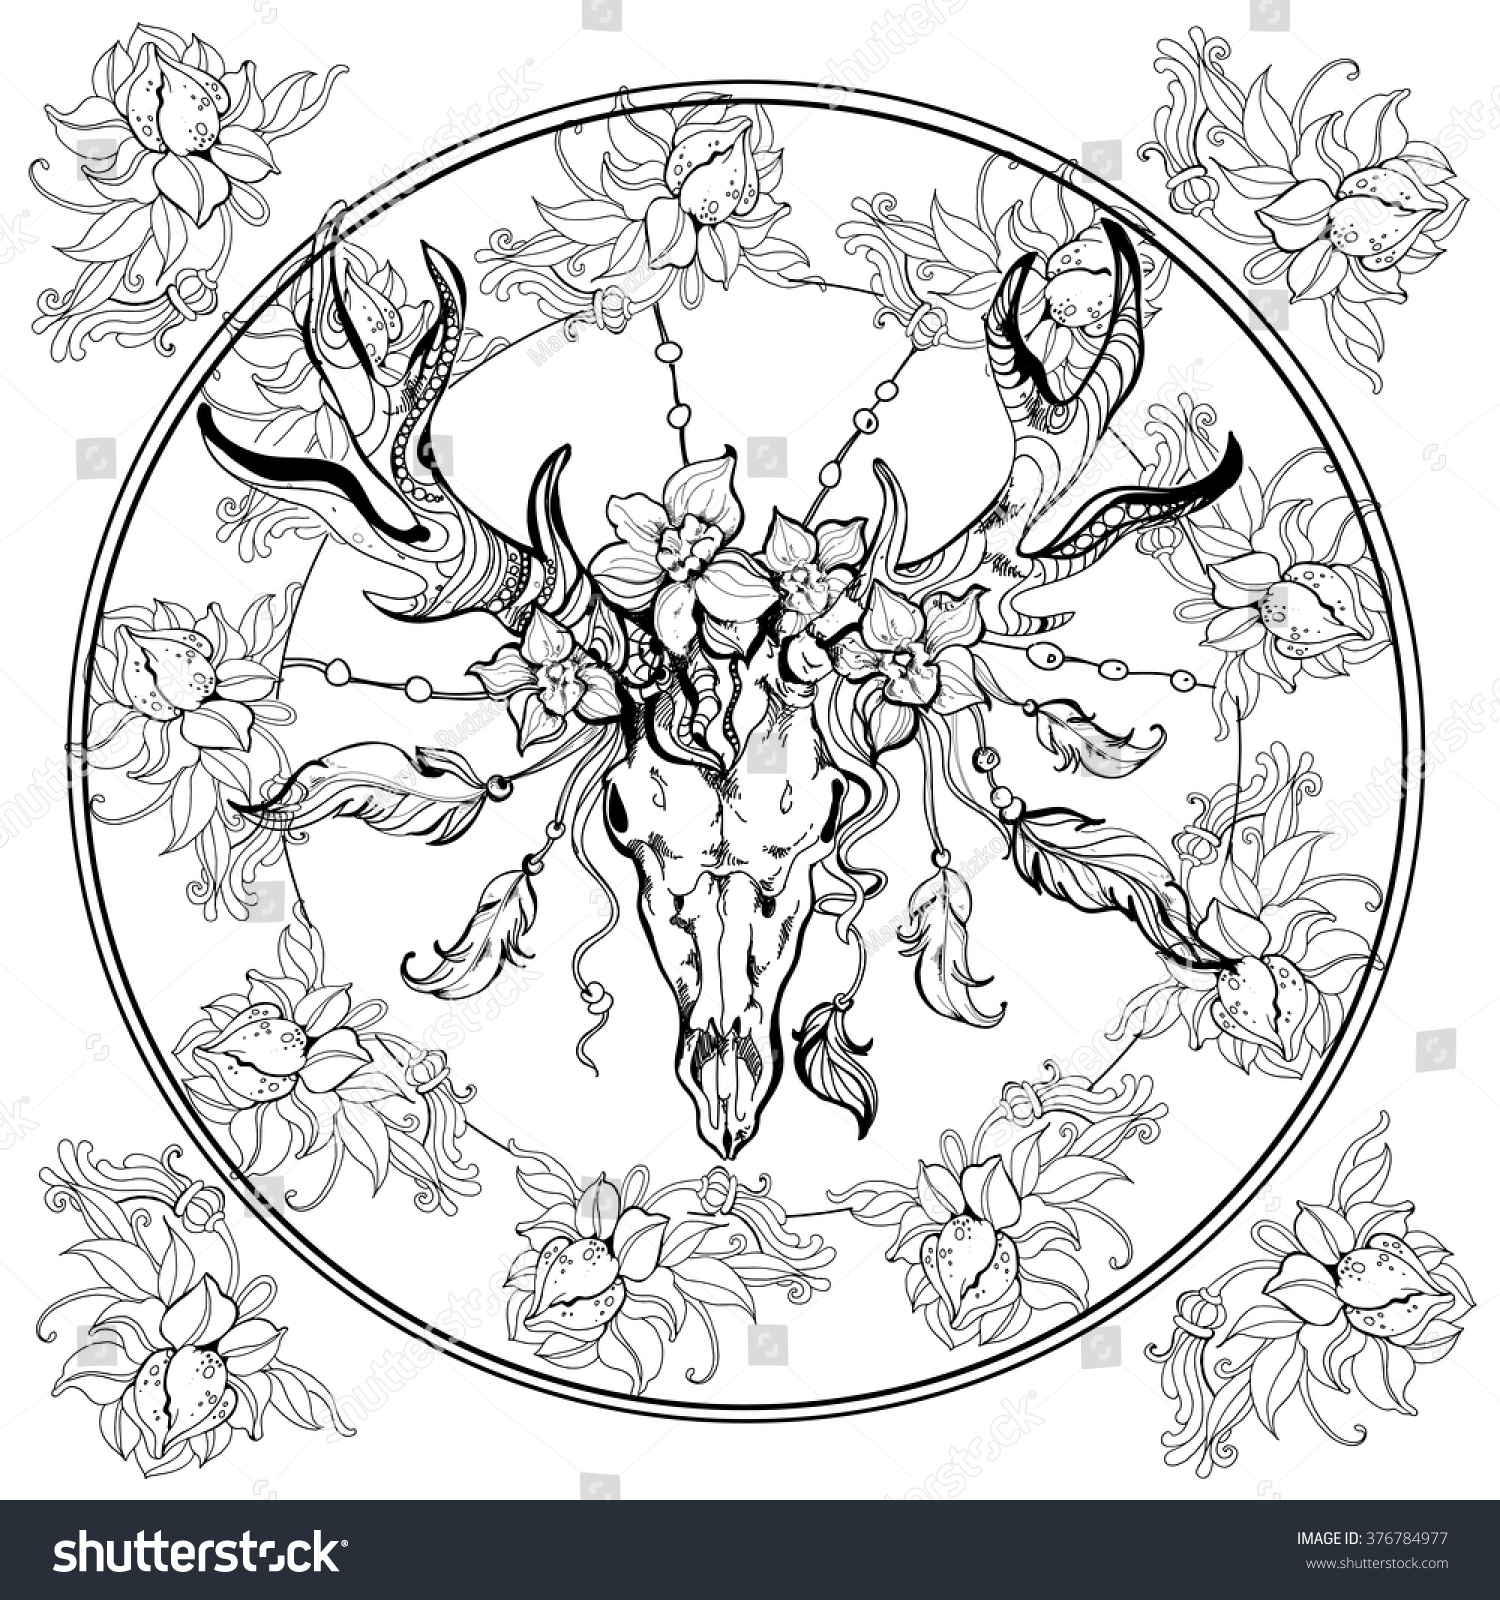 Boho Deer Scull Adult Coloring BookEPS Page Illustration Vector Hand